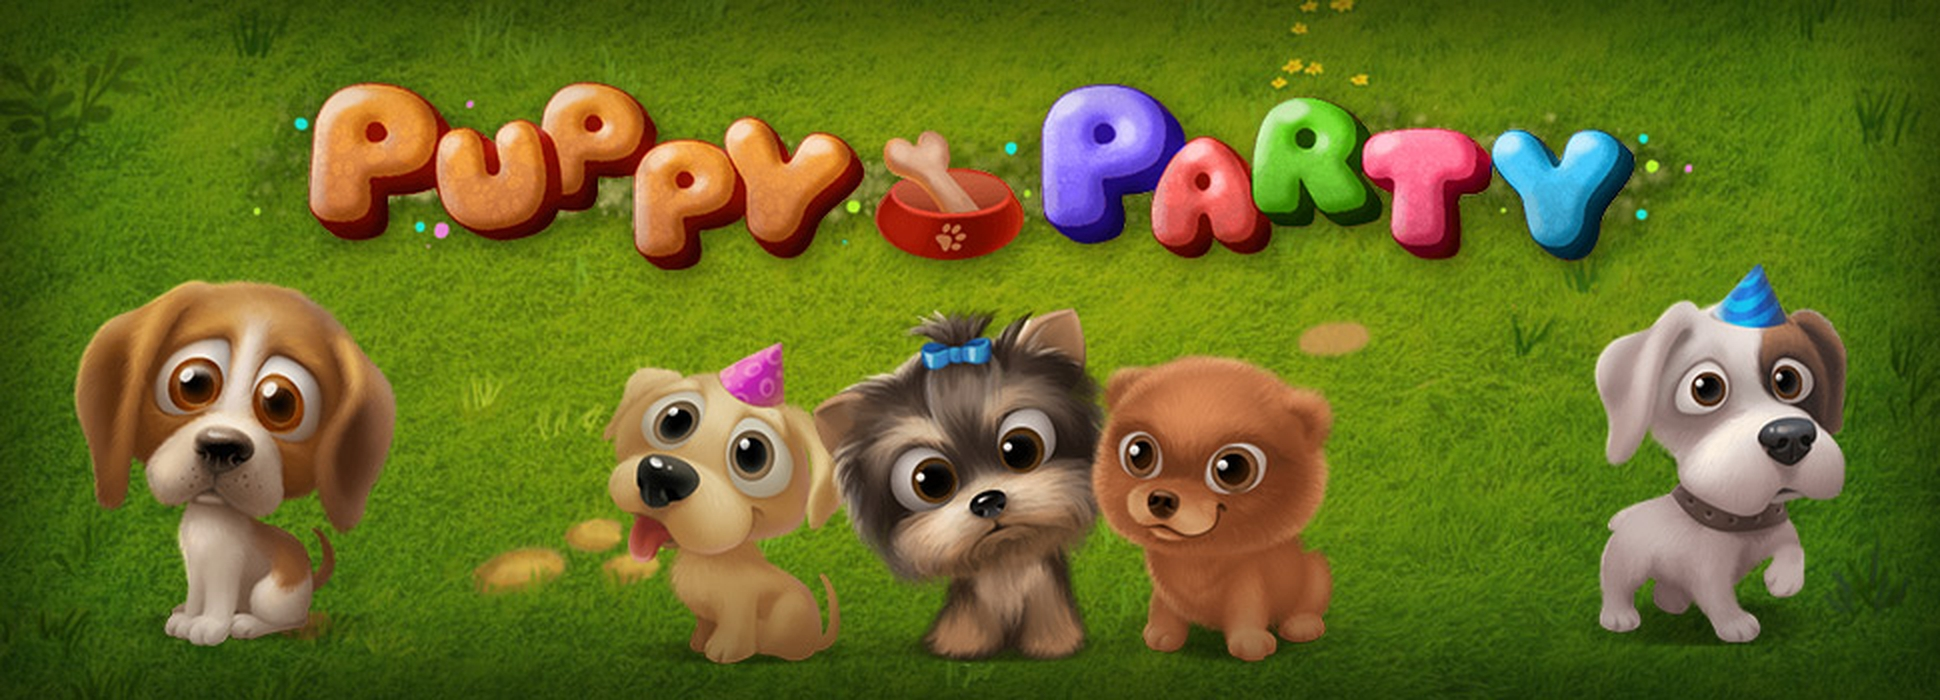 The Puppy Party Online Slot Demo Game by Mobilots